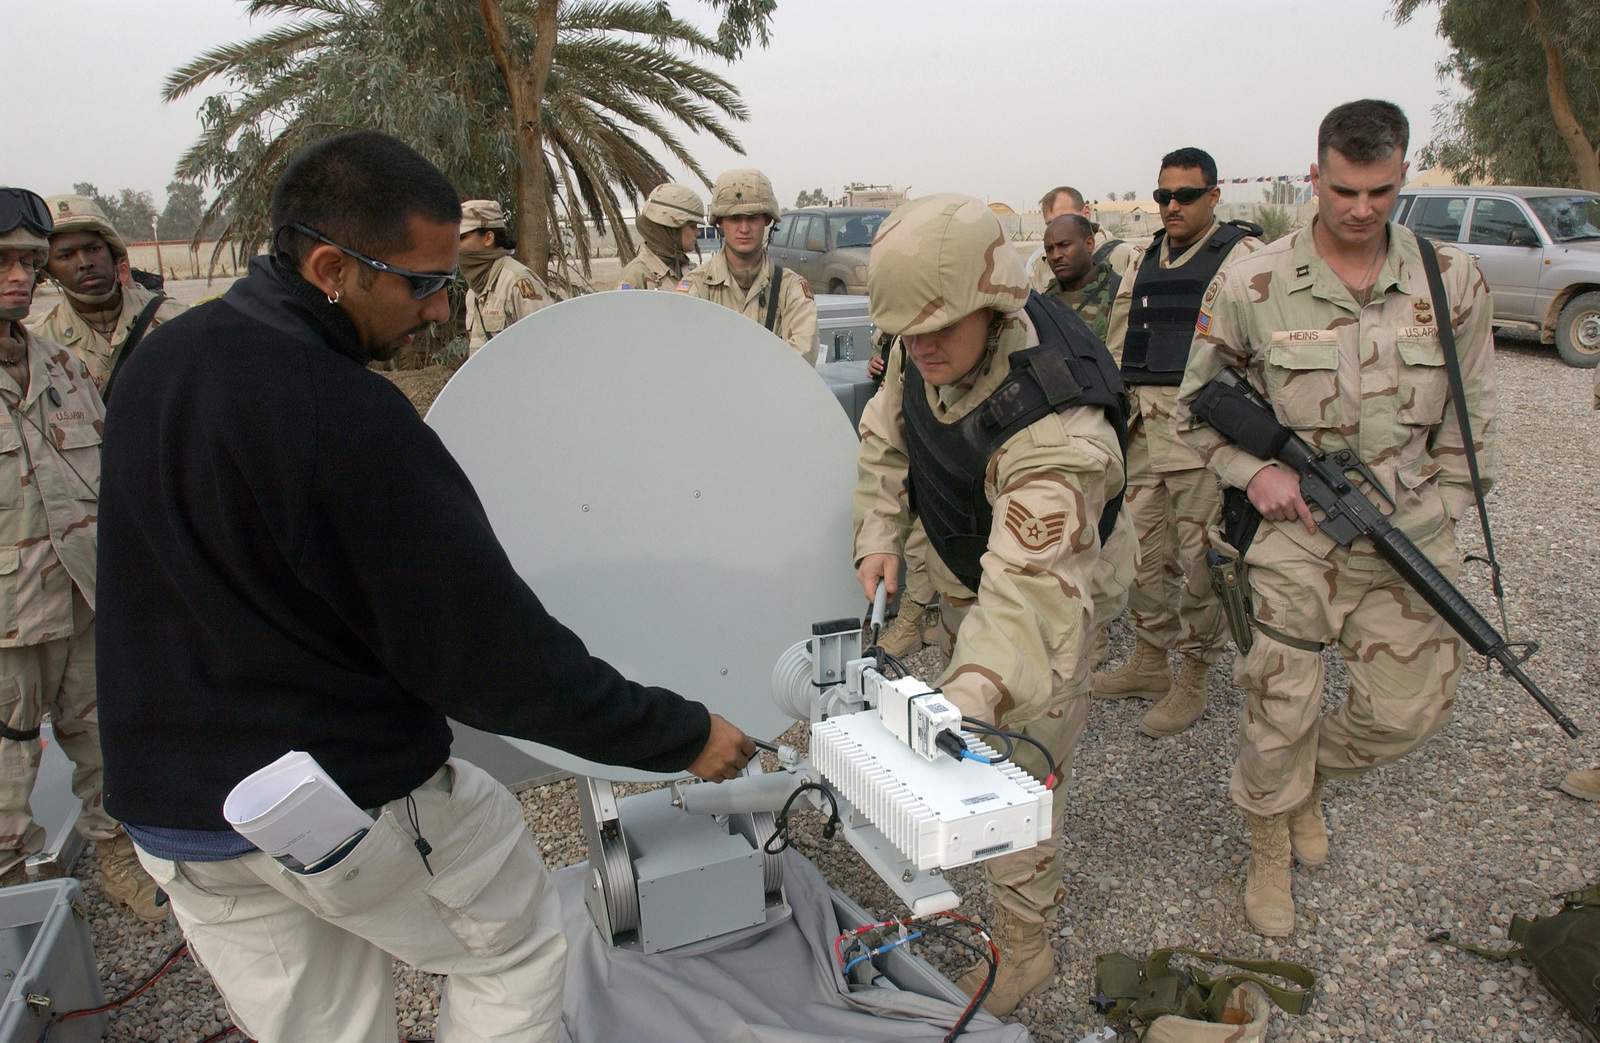 Mr. Reggie Ratcliff and US Air Force (USAF) STAFF Sergeant (SSGT) Ronald VanAusdal, 1ST Combat Camera Squadron (CTCS), Charleston Air Force Base (AFB), South Carolina (SC), teach members of Combat Camera how to attach the 1.2 meter Offset Dish Antenna to the base of the Joint Combat Camera Imagery Transmission Satellite System (JCCITSS) at Baghdad International Airport (BIAP). Members of Combat Camera are in Iraq establishing a satellite imagery management system for deployed teams throughout the theater to transmit photos and video back to a central location during Operation IRAQI FREEDOM